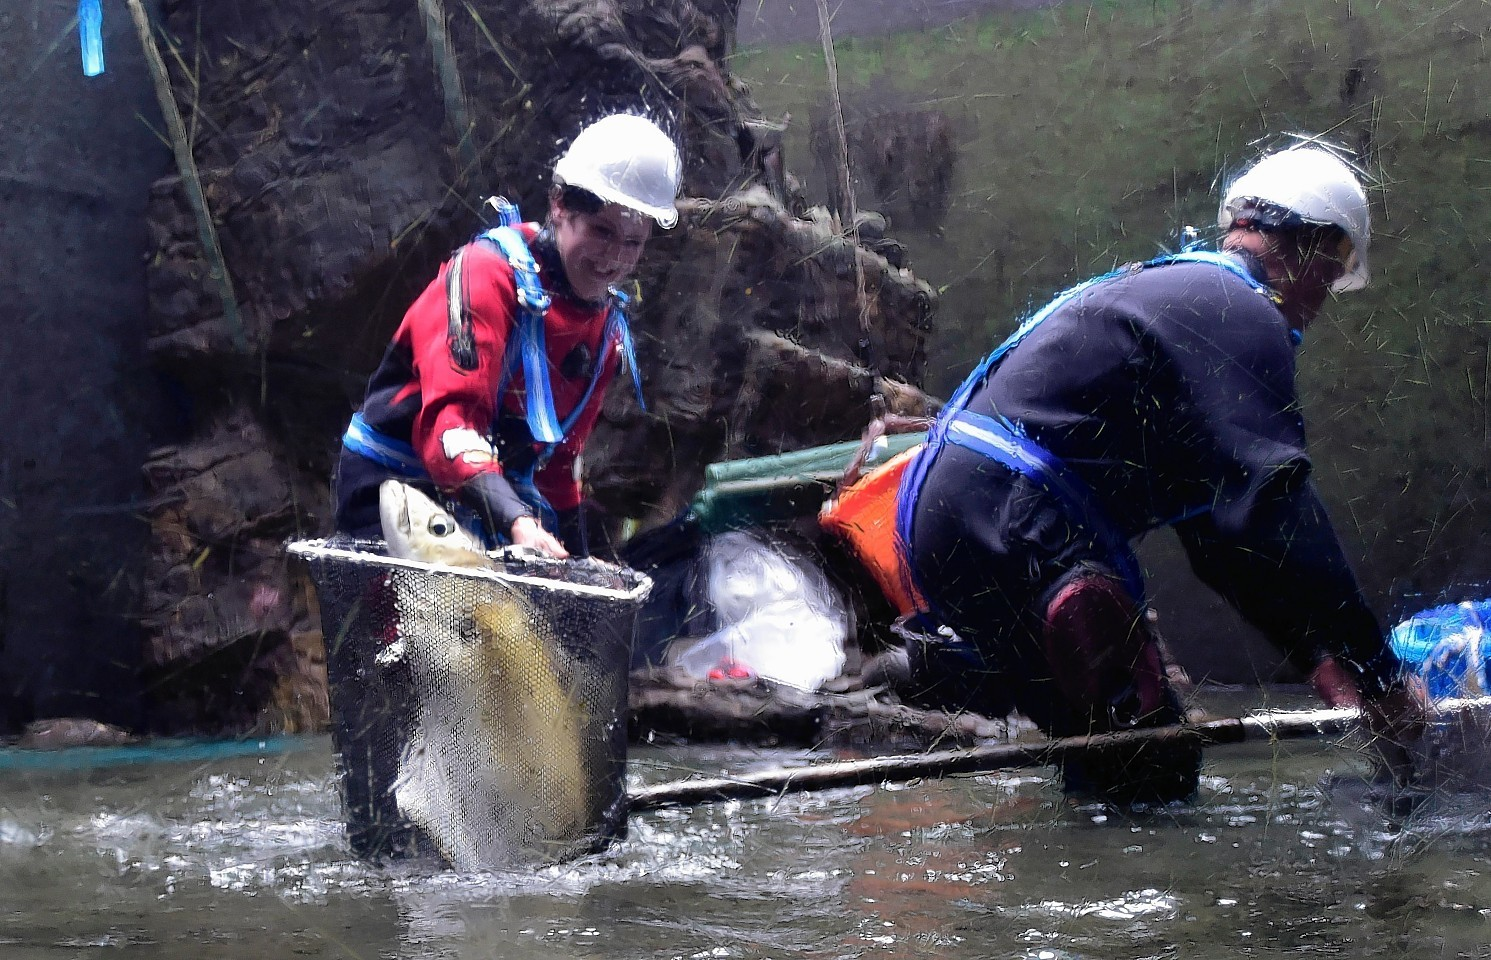 DIVERS  CATCH THE FISH WITH NETS AS THE WATER LEVEL FALLS